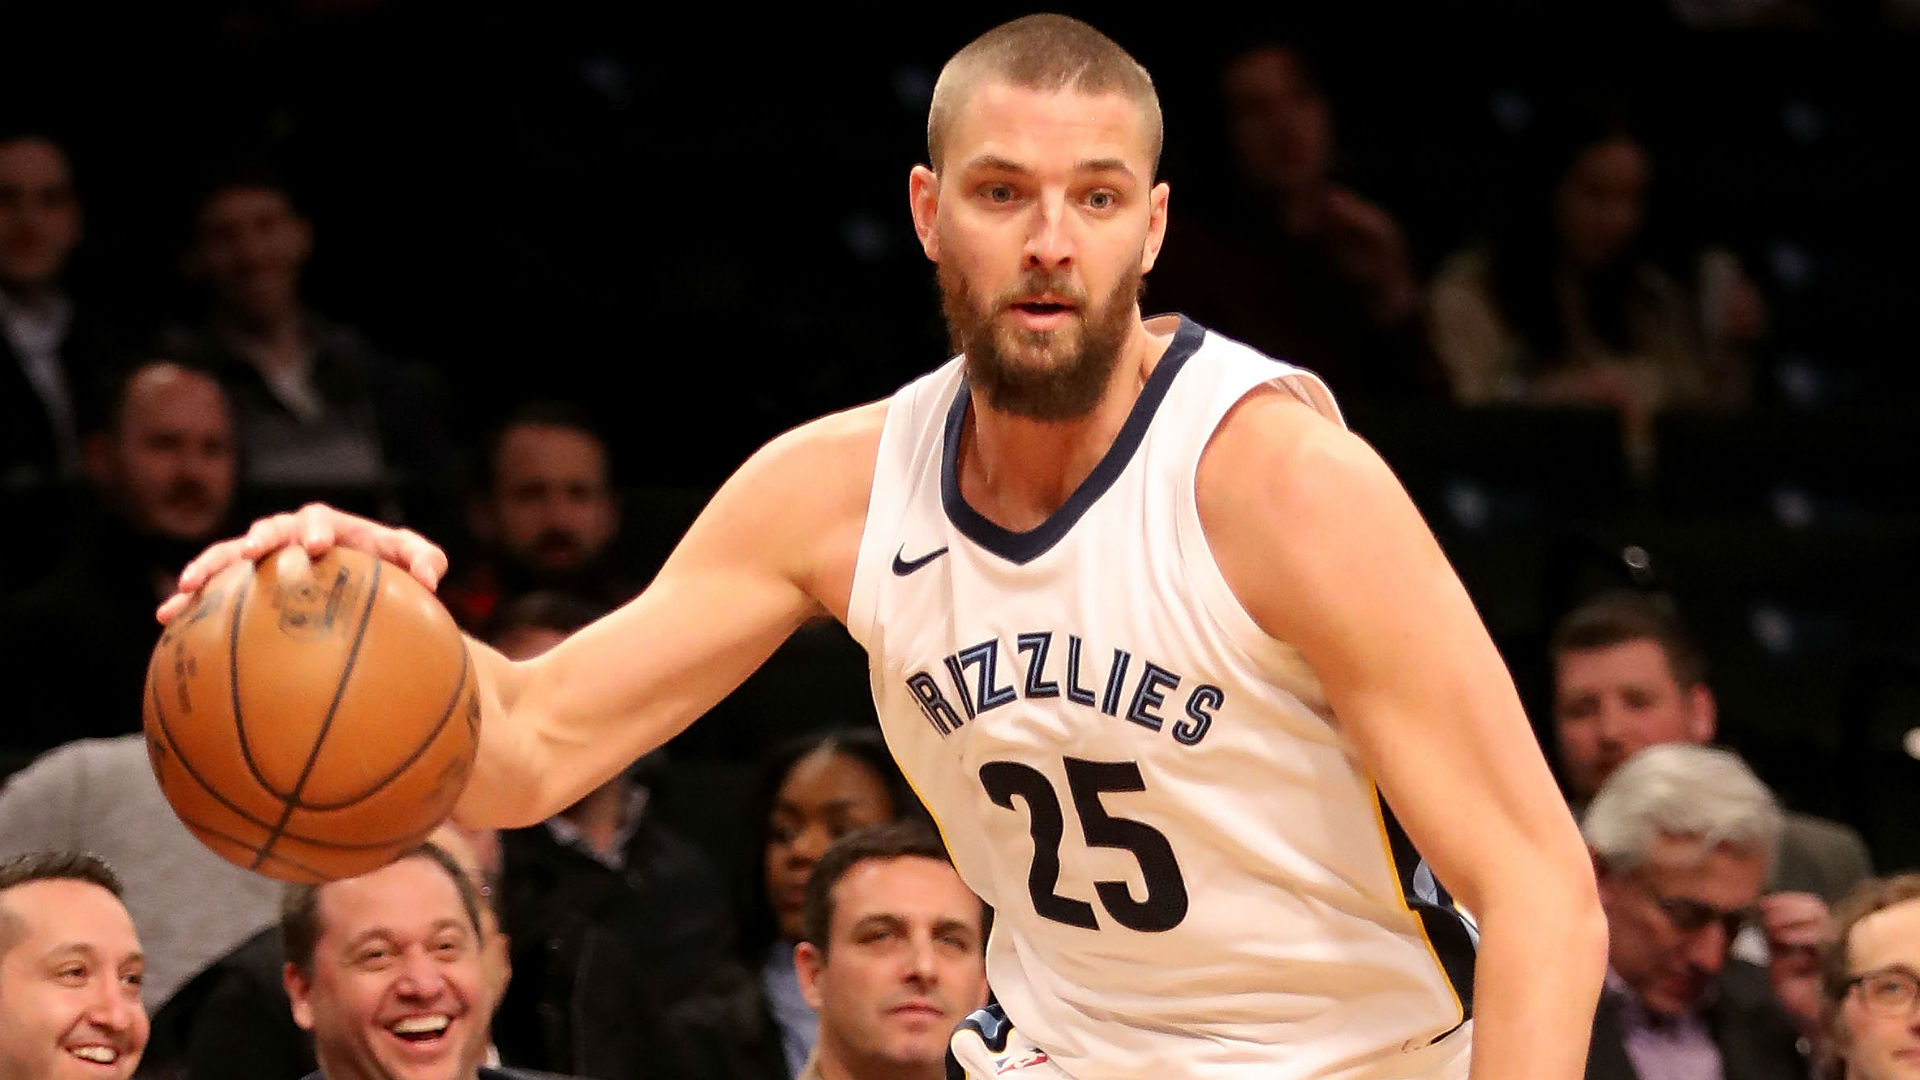 Parsons 'extremely disappointed' Grizzlies didn't give him chance